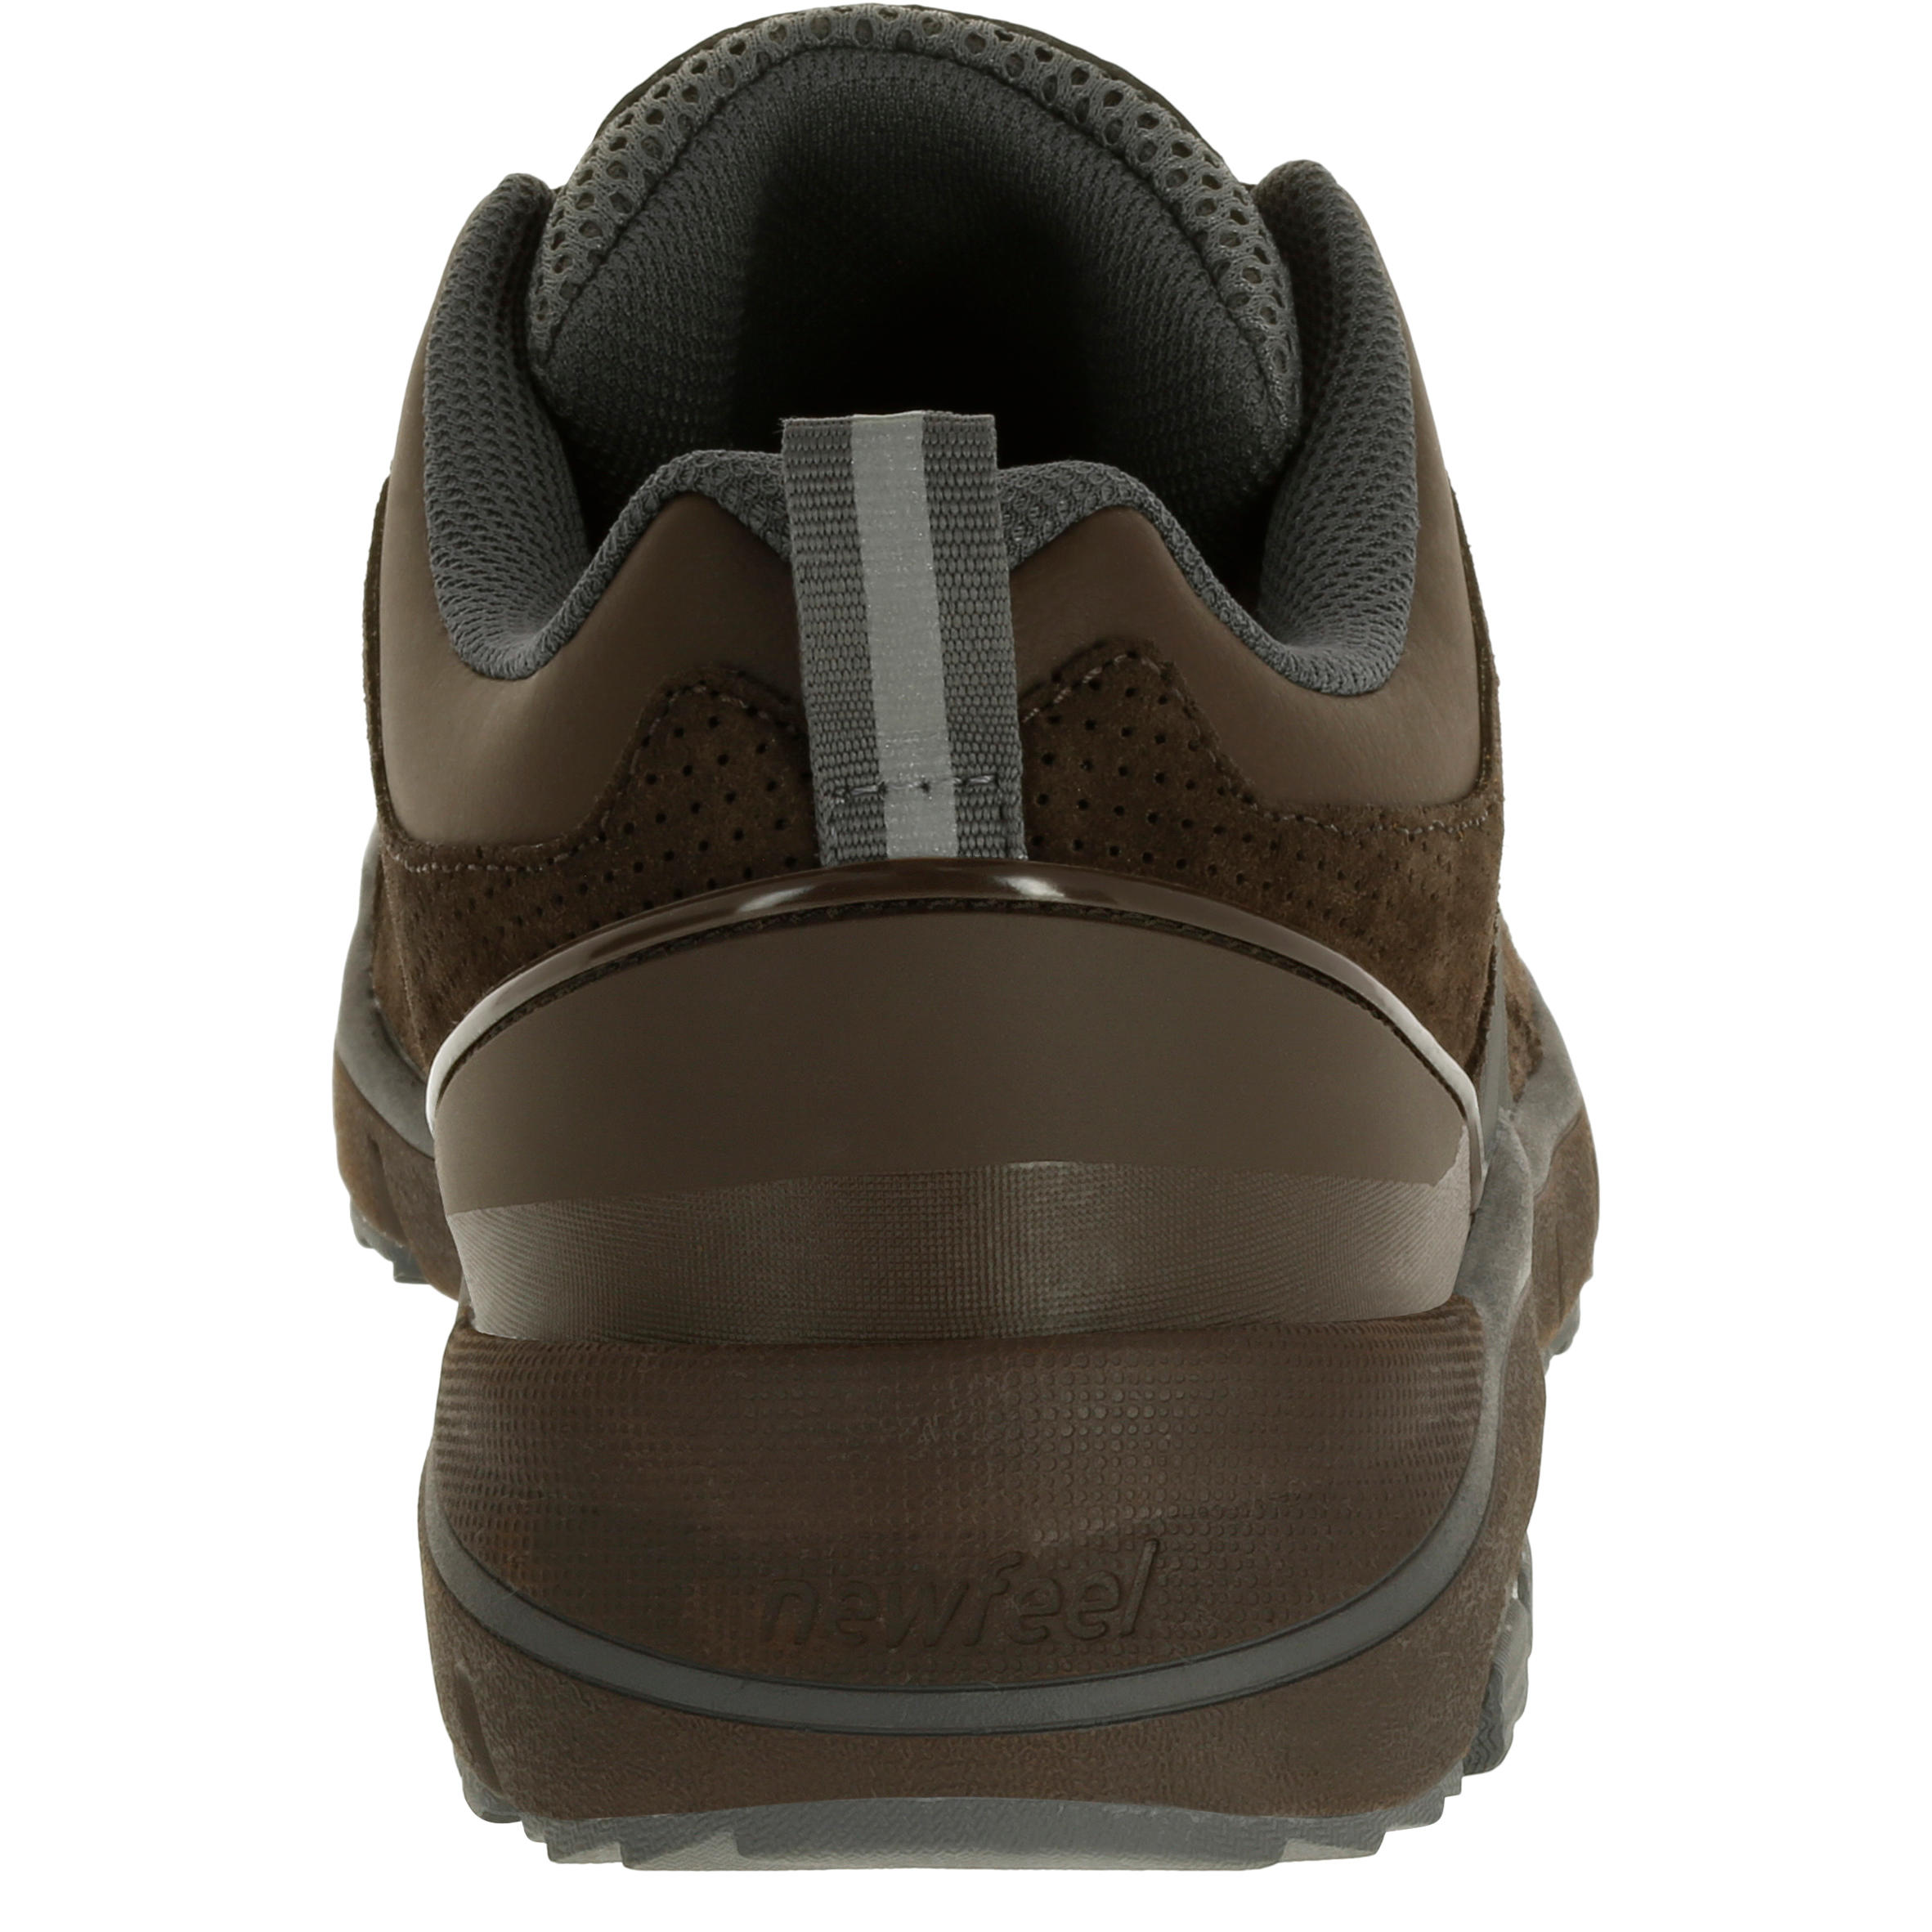 Chaussures marche sportive homme HW 540 cuir marron